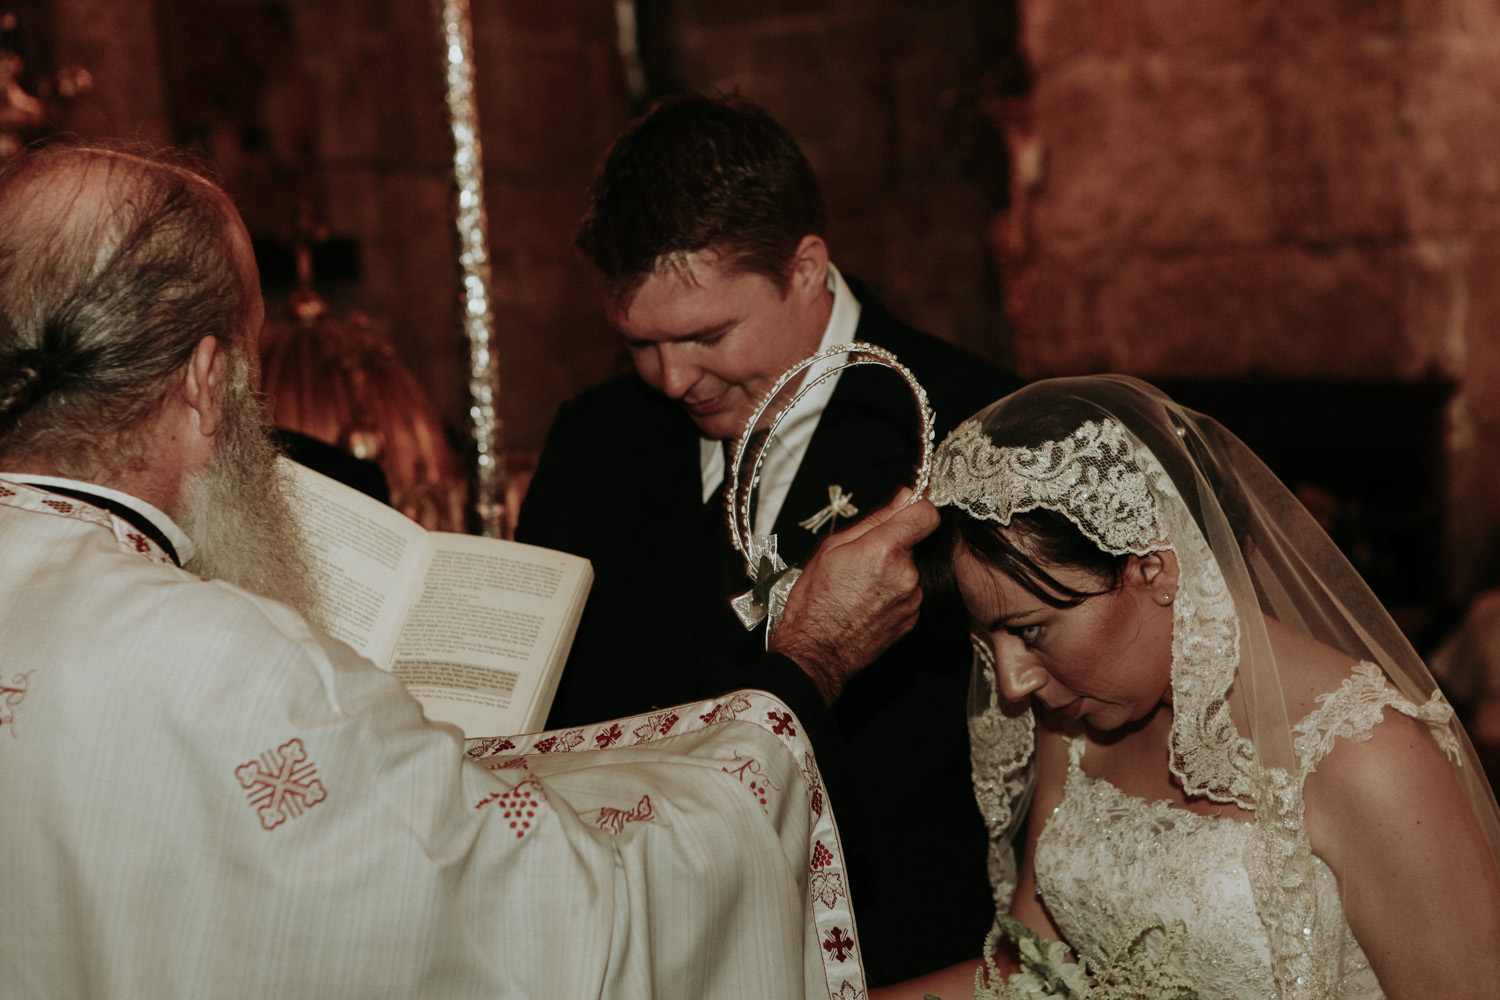 Wedding Crowns Greek wedding traditions Orthodox wedding Lazarus Church Cyprus